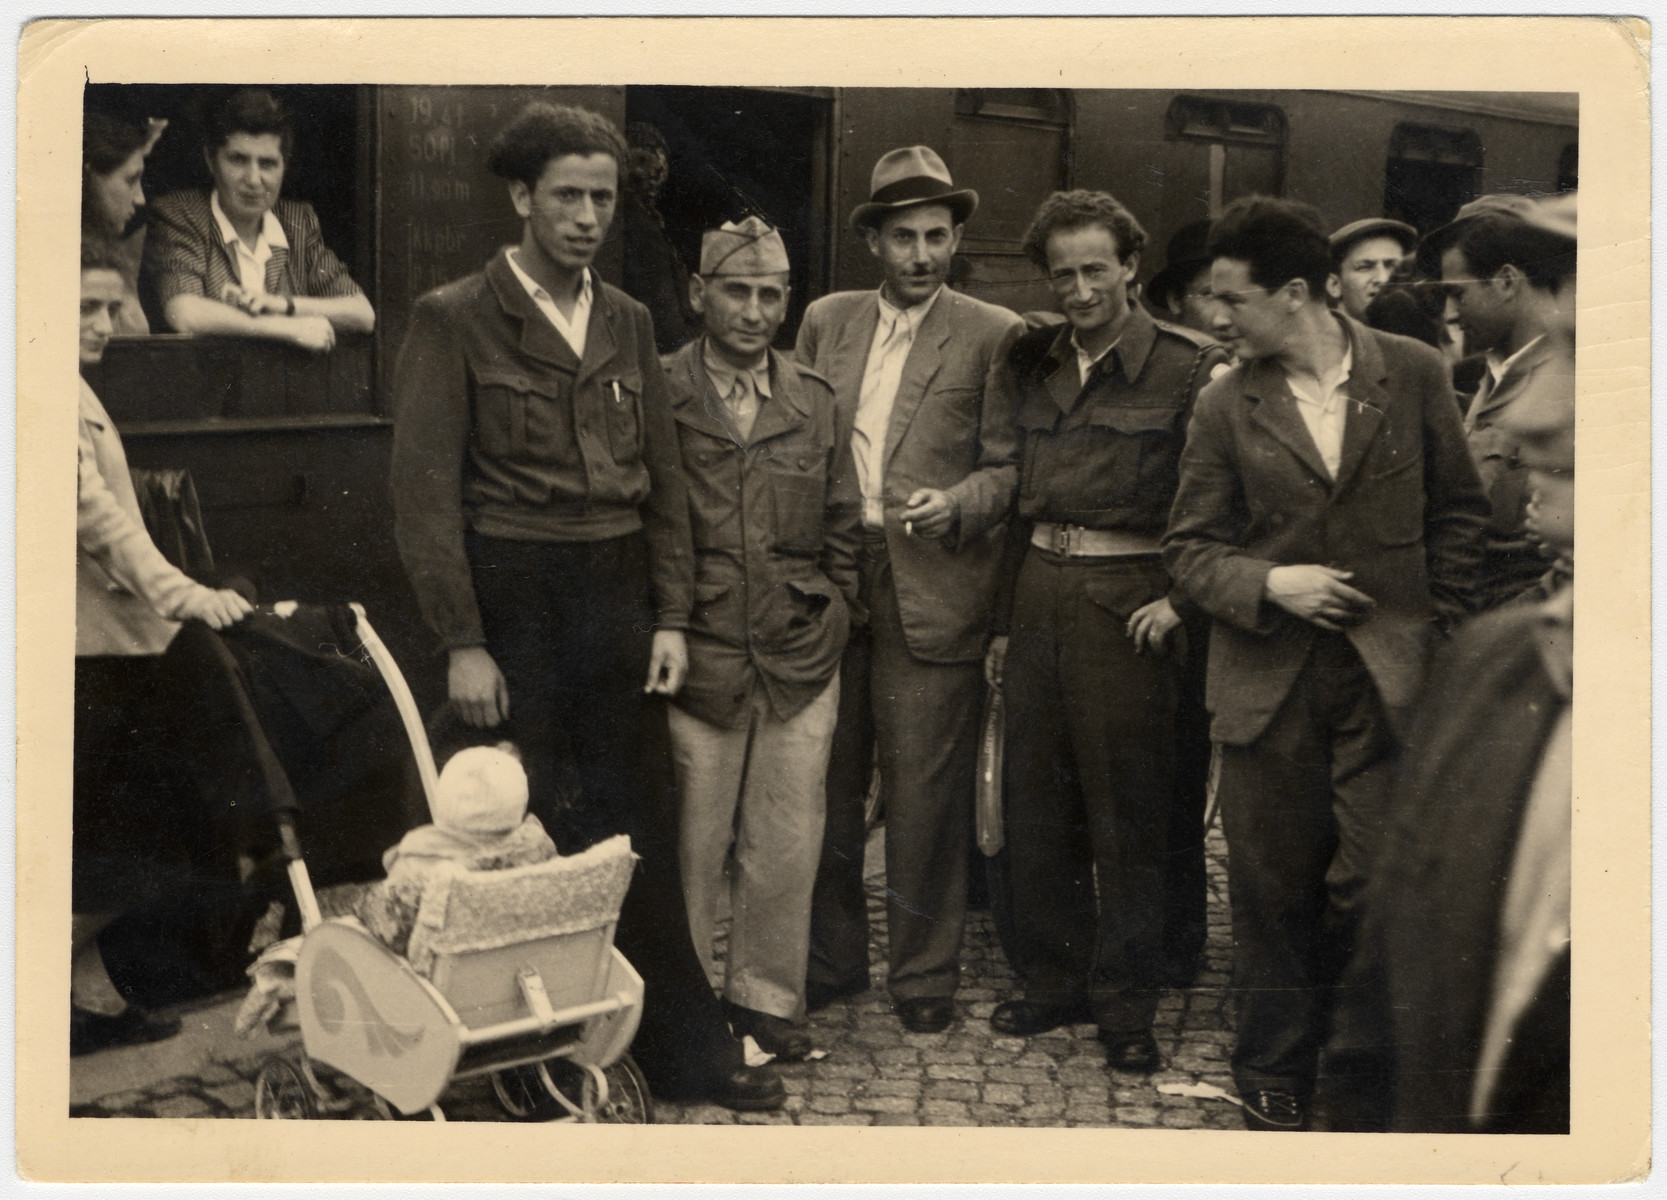 A group of Jewish men and women, one pushing a baby stroller, from the Bergen-Belsen displaced persons camp pose at the train station.  Erno Pollak is standing on the left.